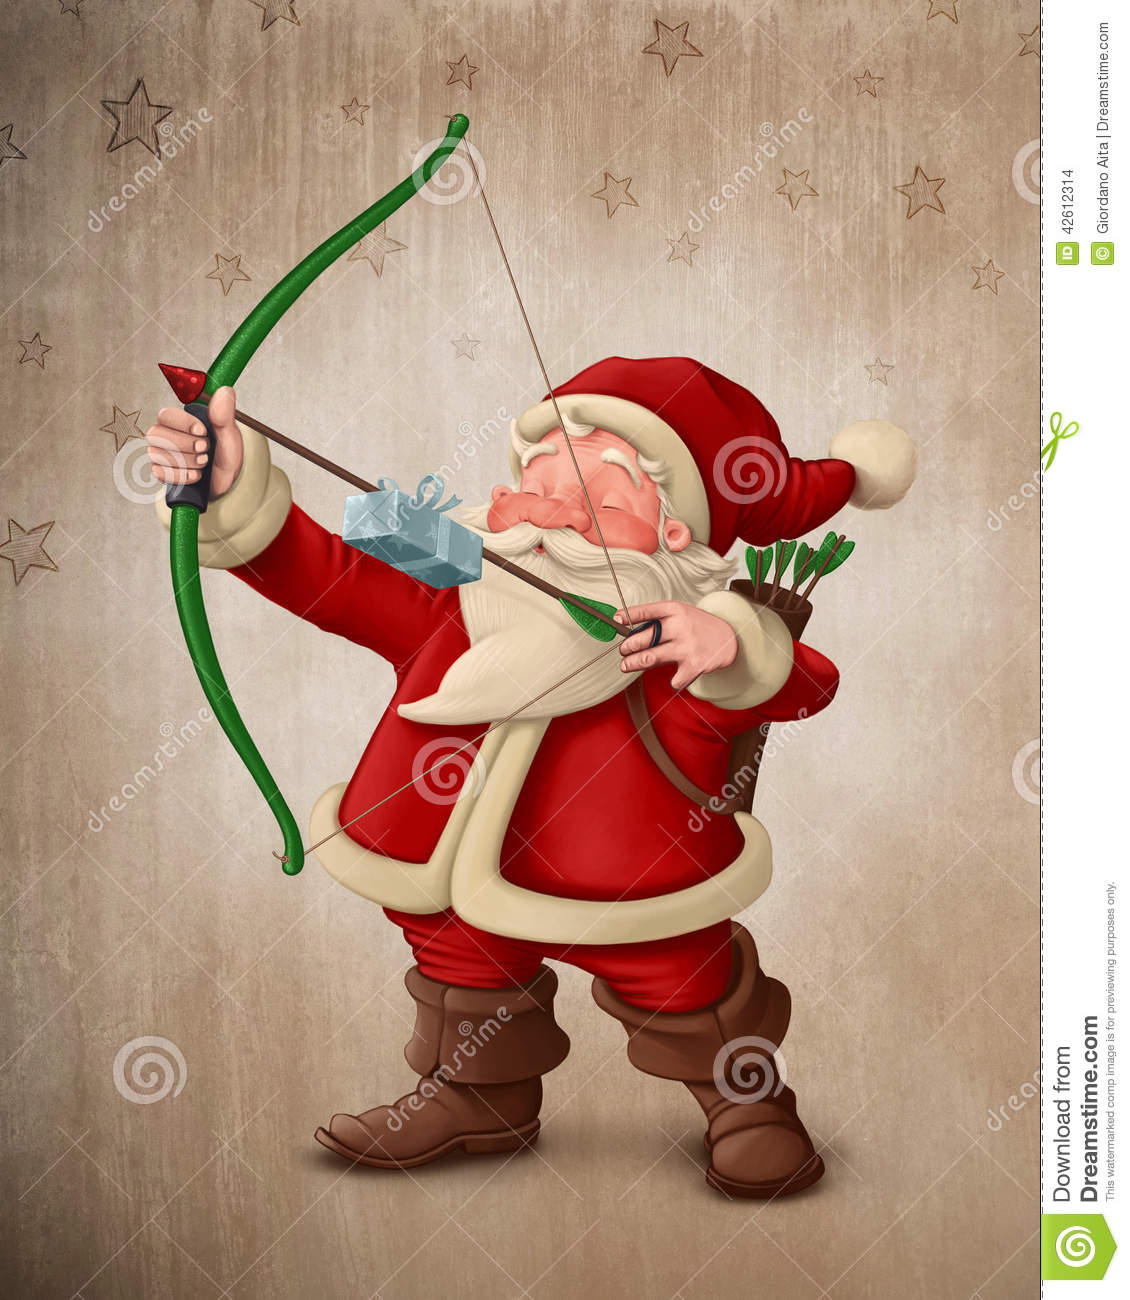 Santa Claus Archer Stock Illustration Image 42612314